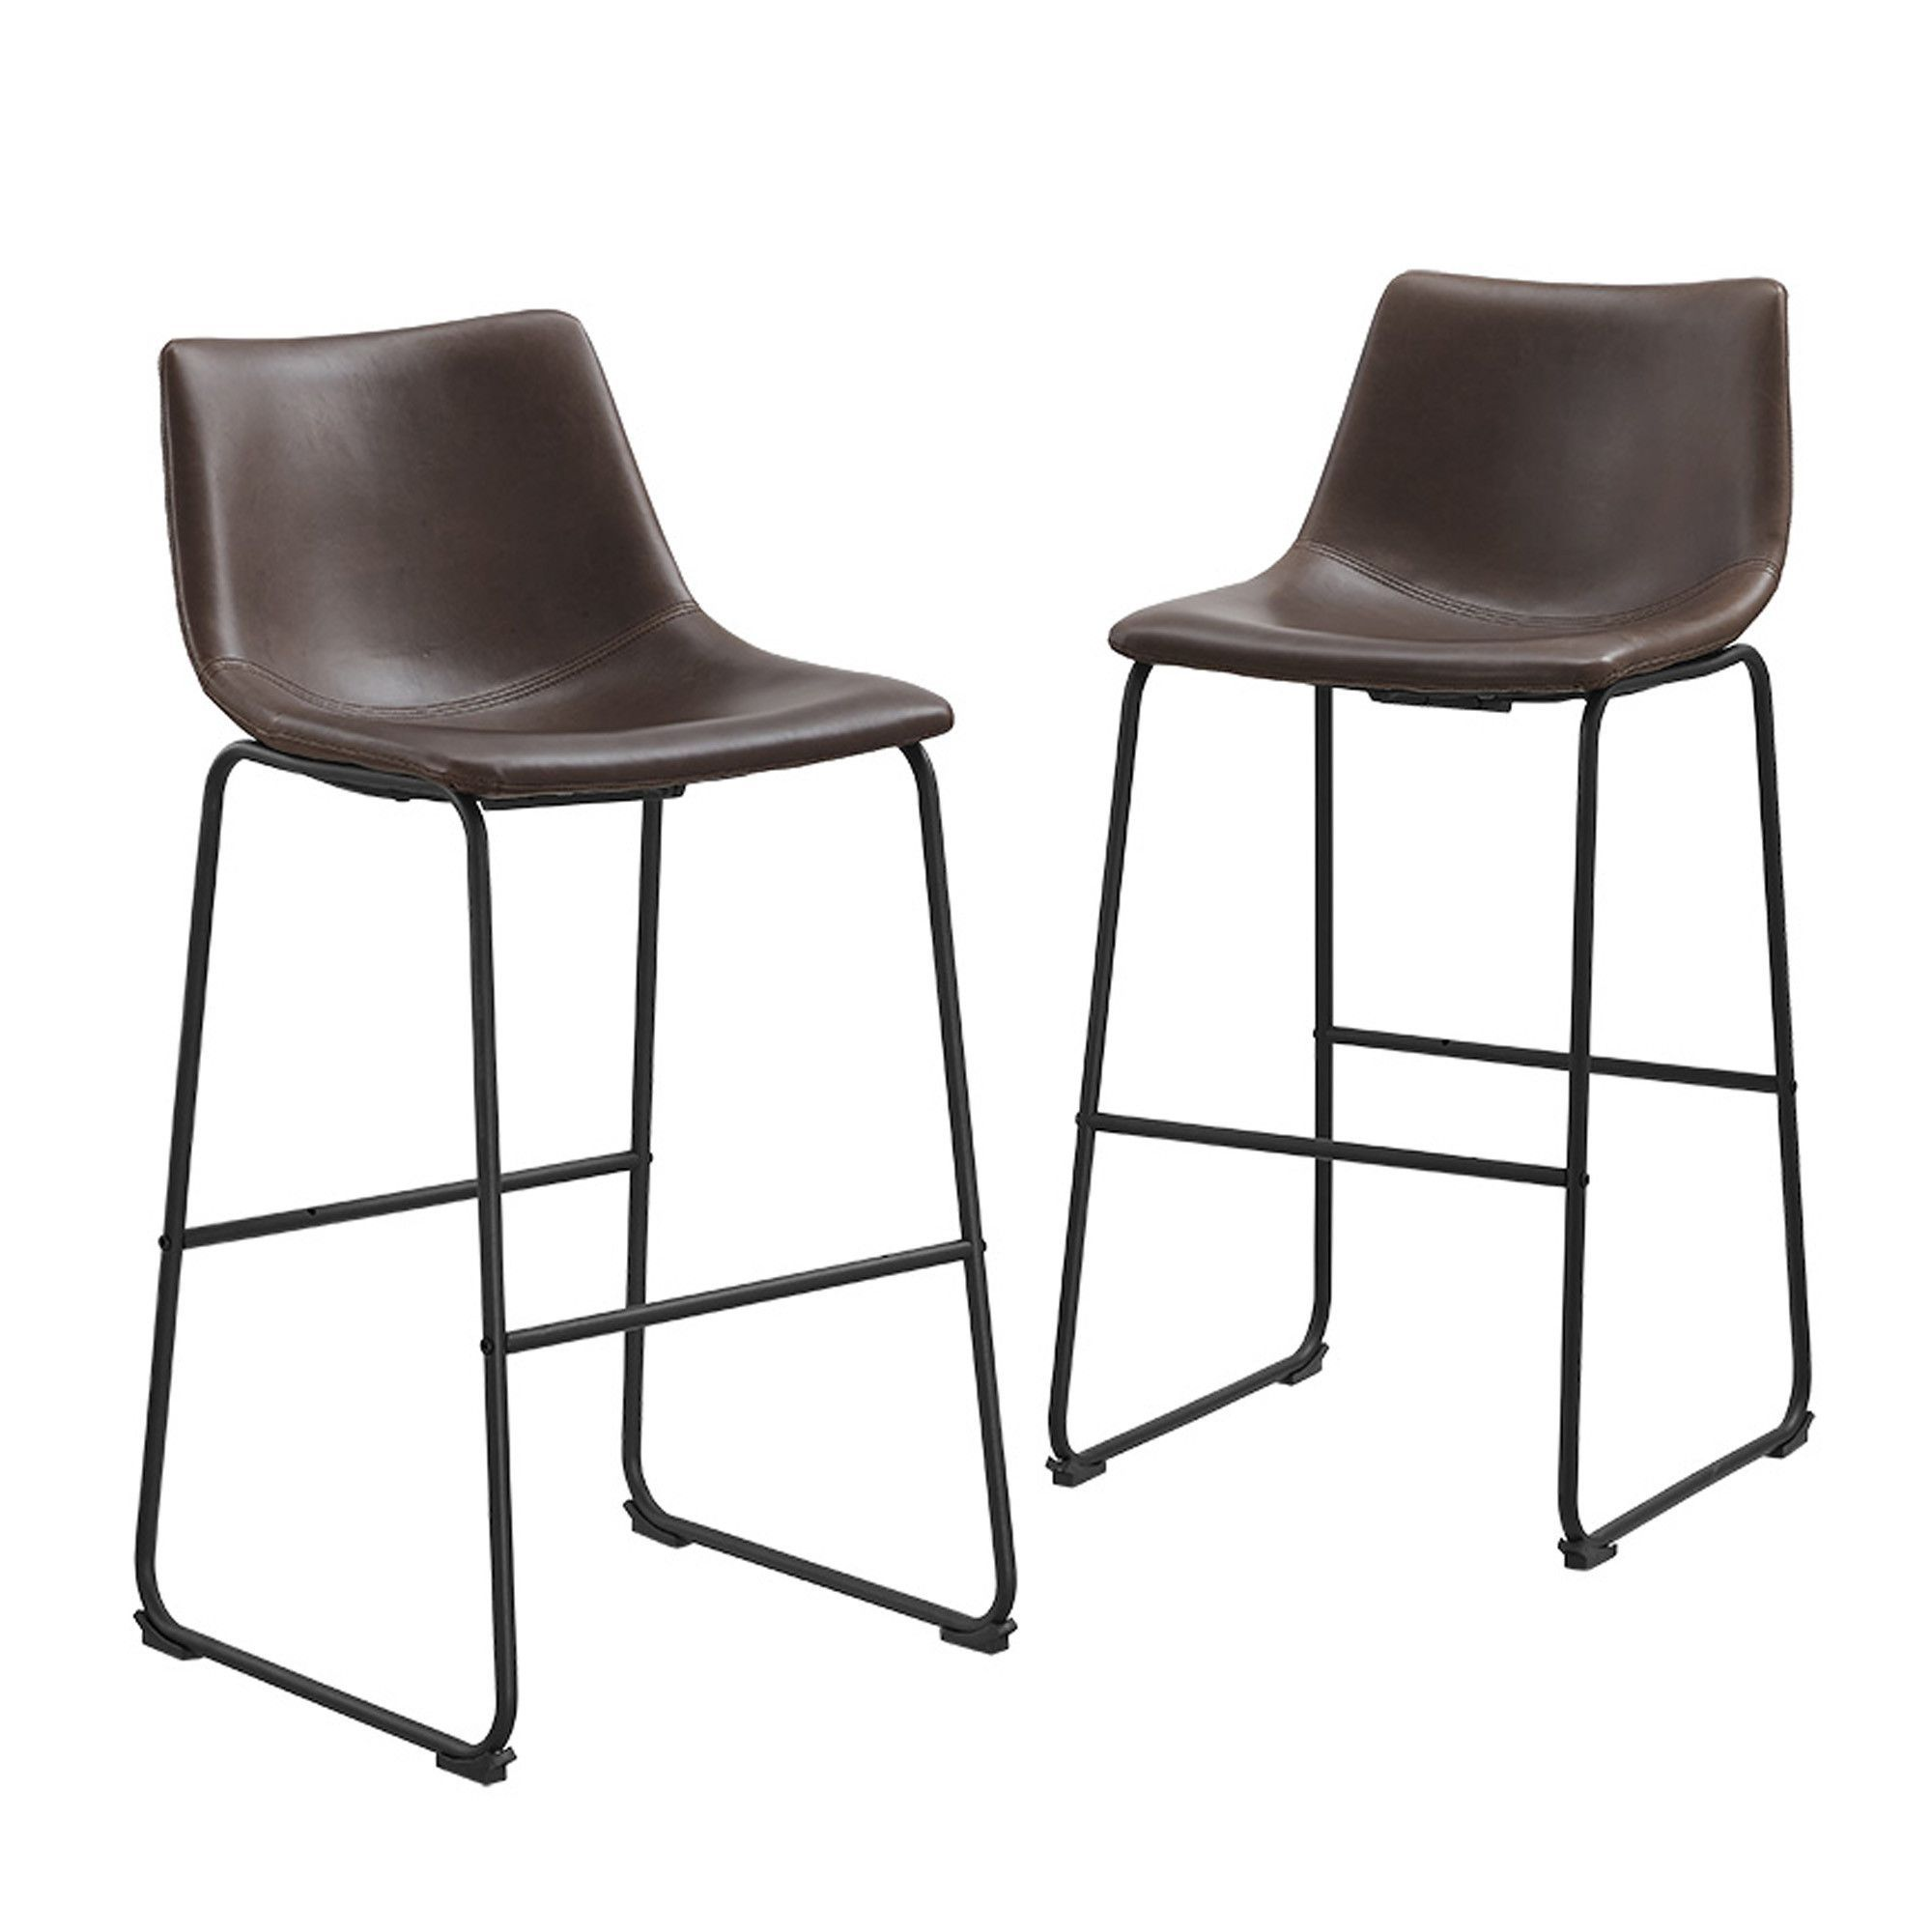 Brown Faux Leather Barstools, Set of 2